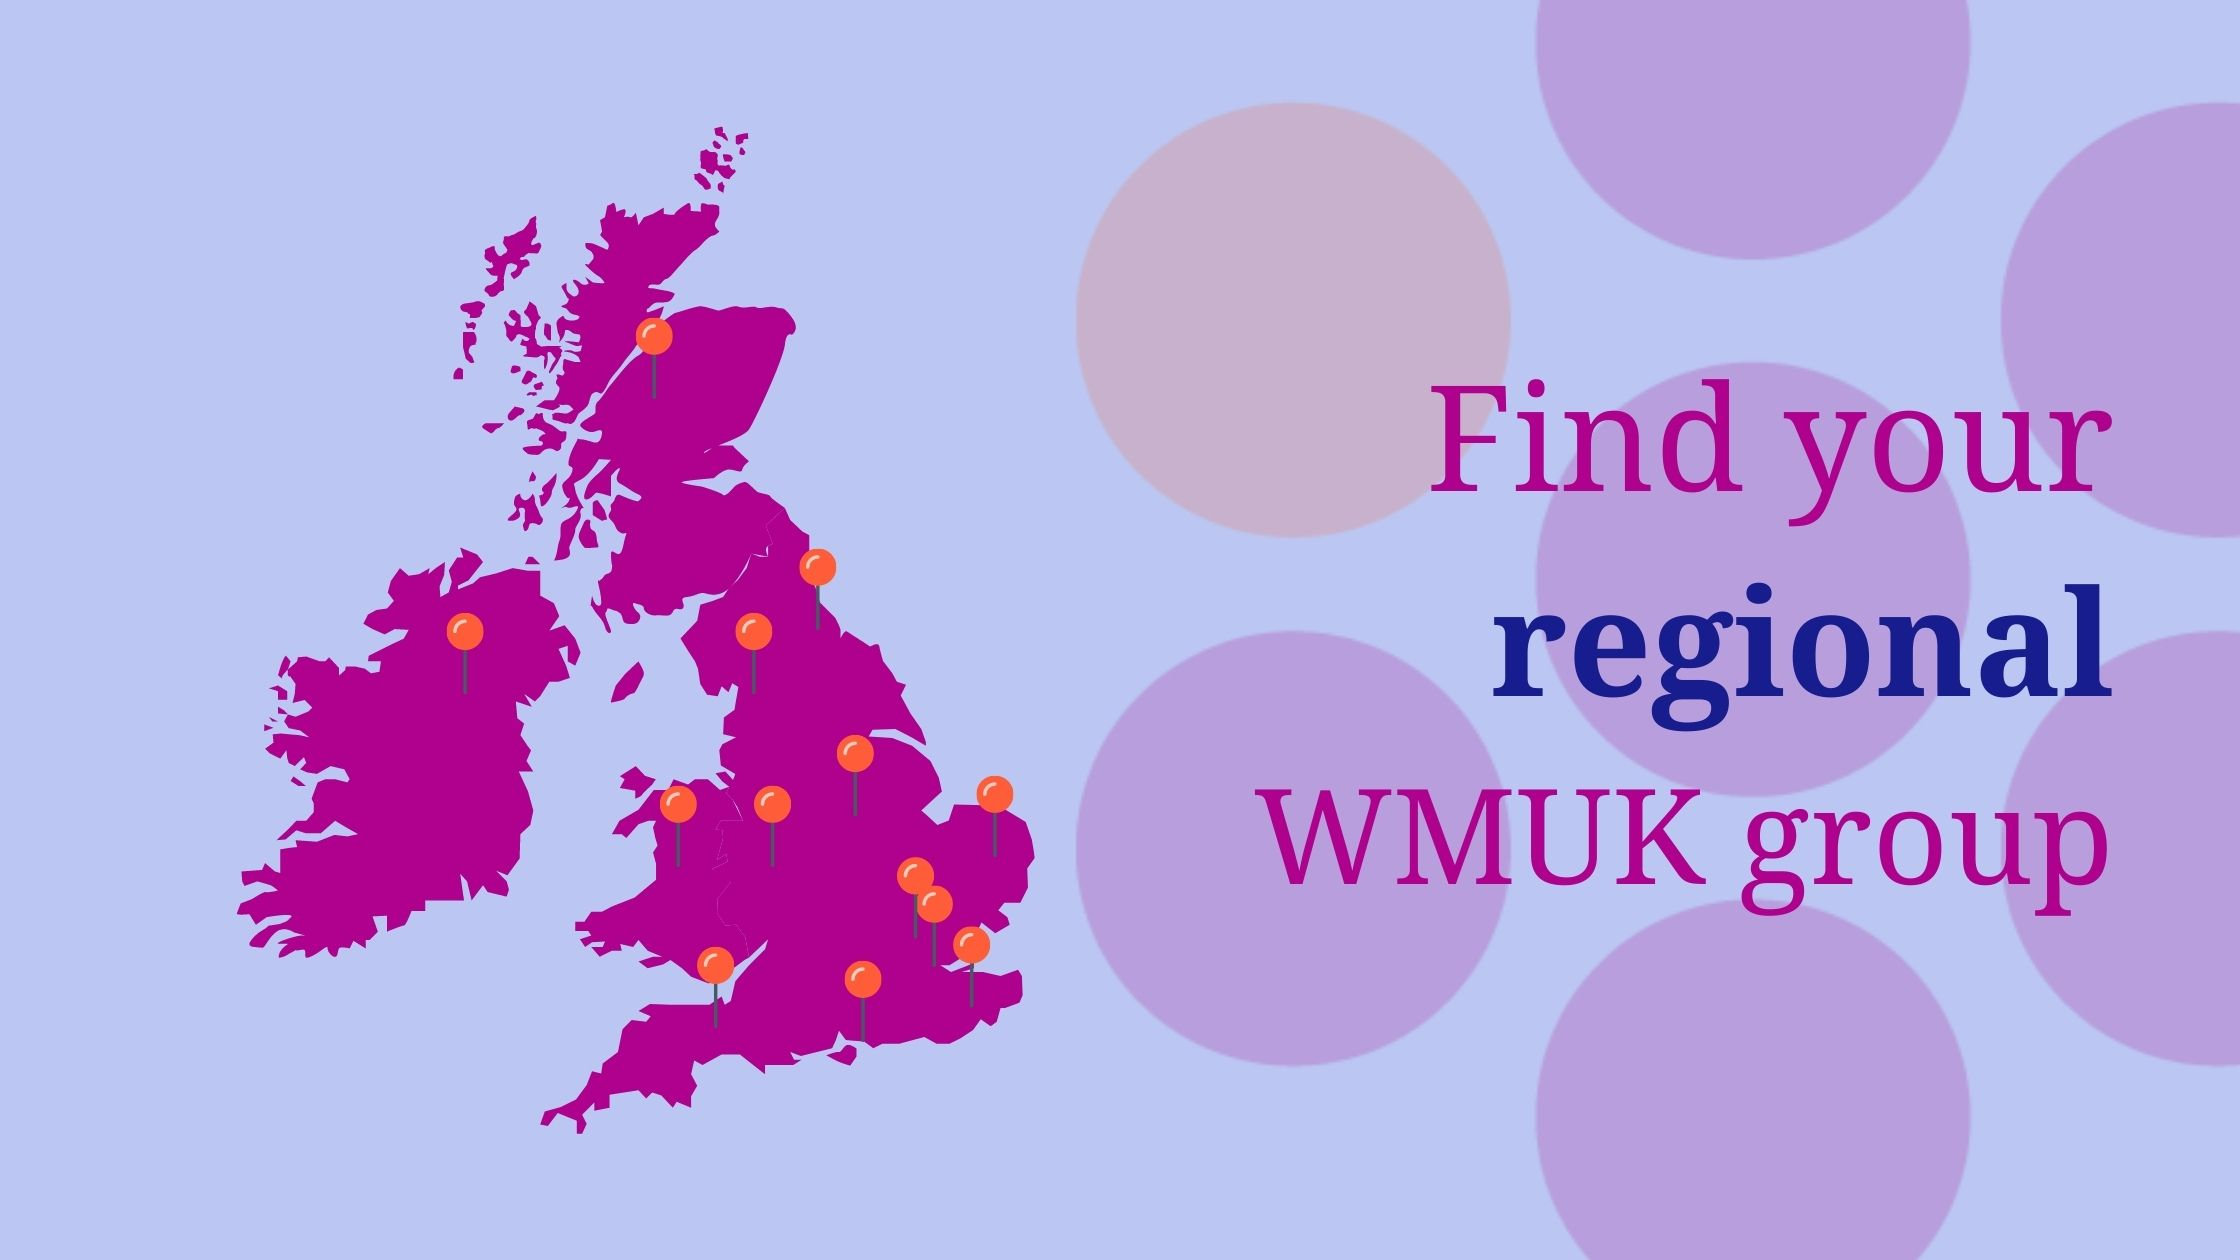 Map of the UK with pins to show where WMUK regoinal groups are located